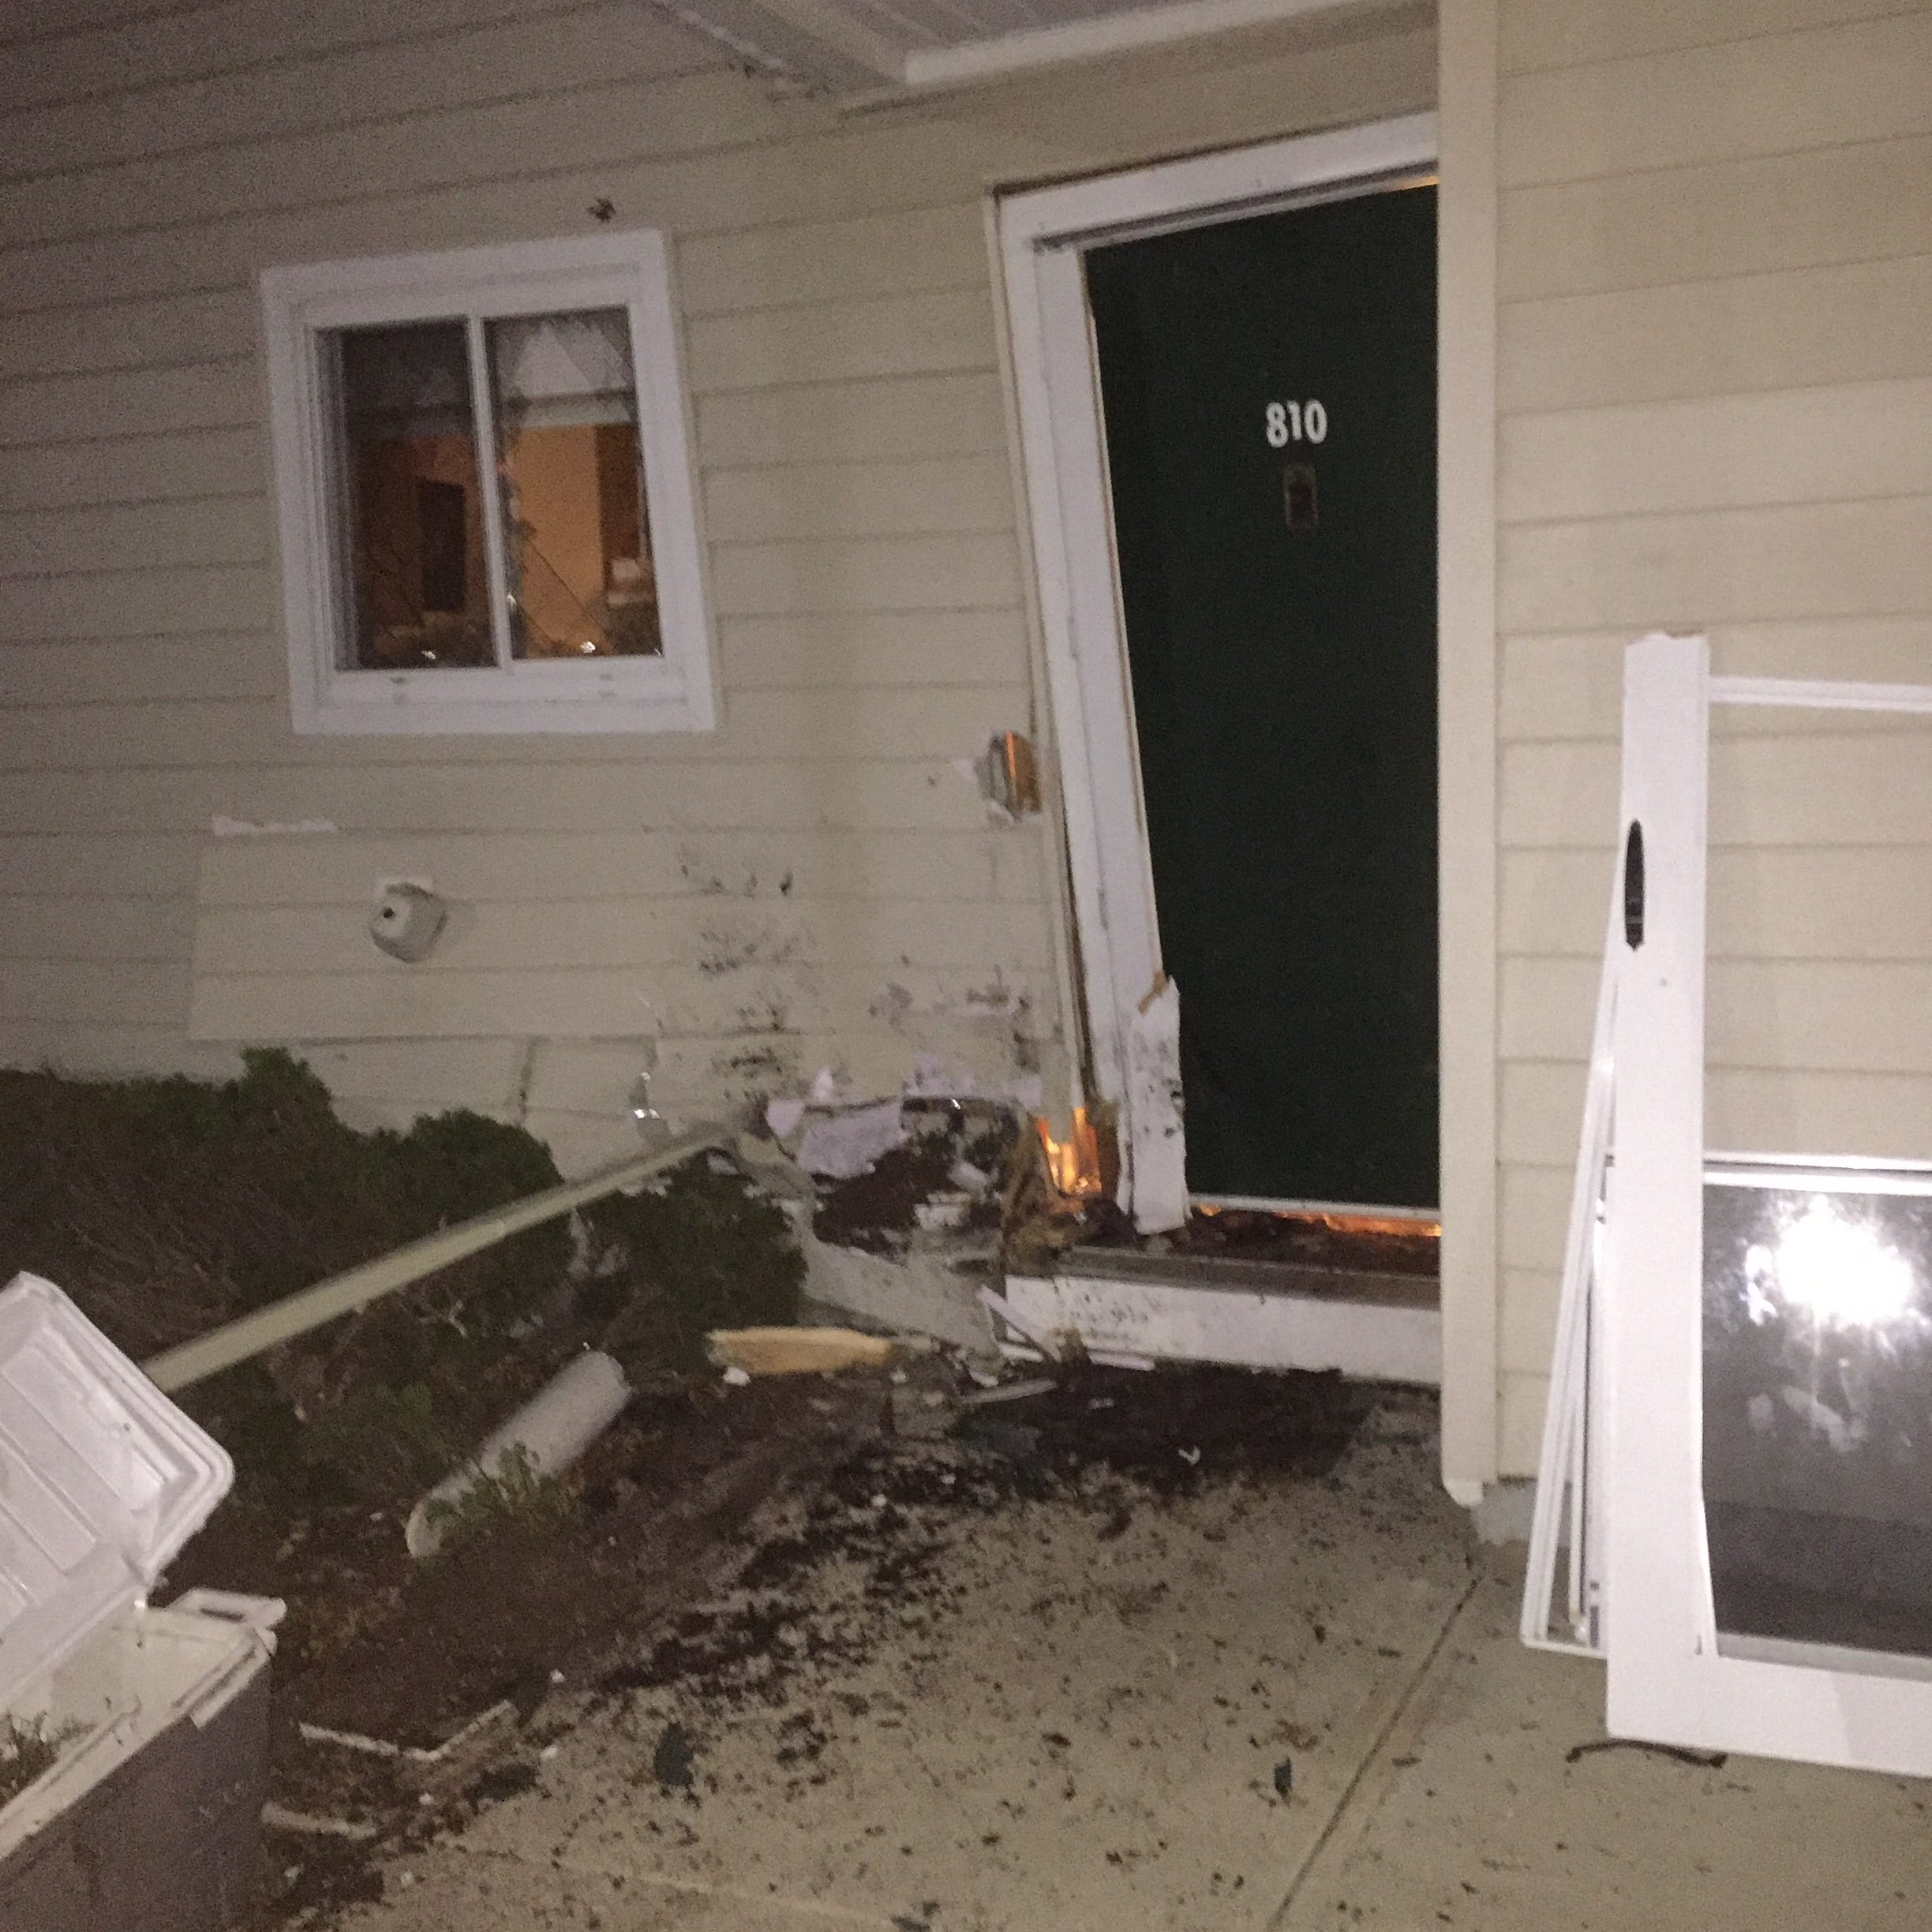 A 22-year-old man crashed his vehicle into a New Paltz residence Sunday morning near 5 a.m., police said.